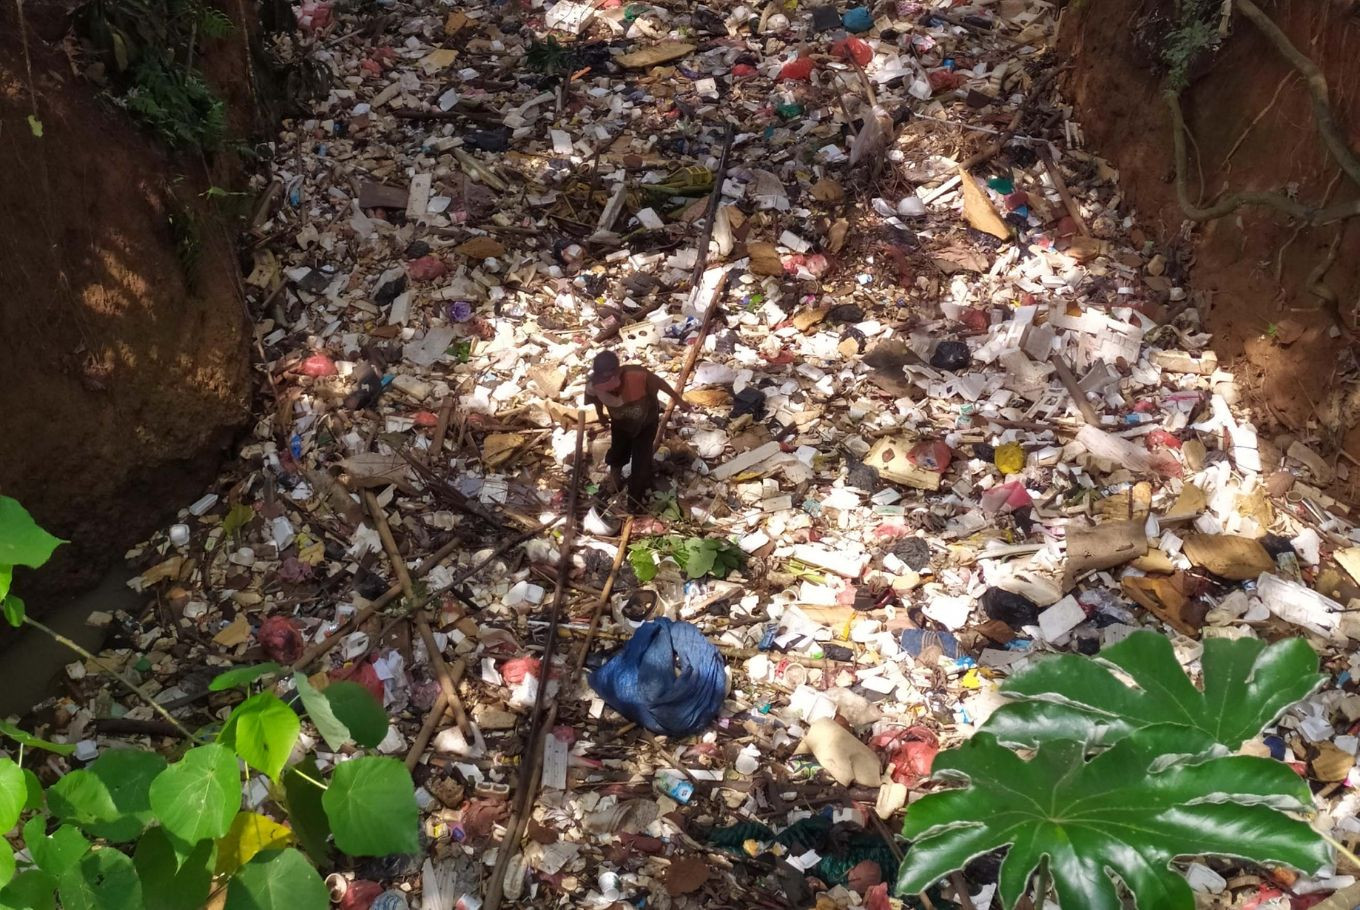 Plastics post-pandemic: Tragedy or opportunity?